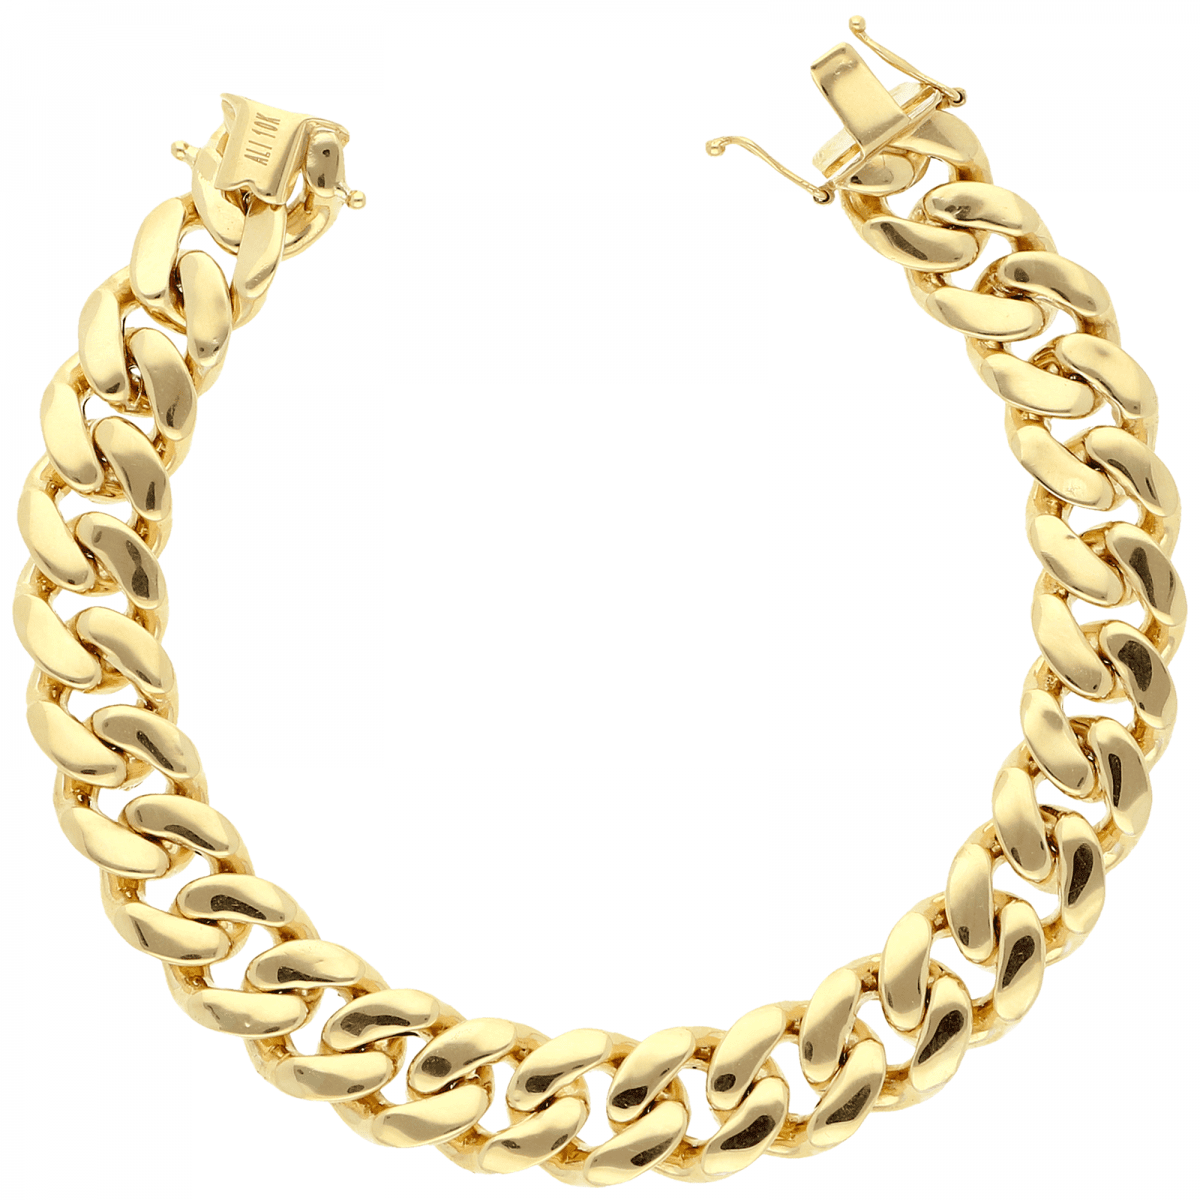 10k Yellow Gold 11mm Wide Miami Cuban Link Box Clasp Lock